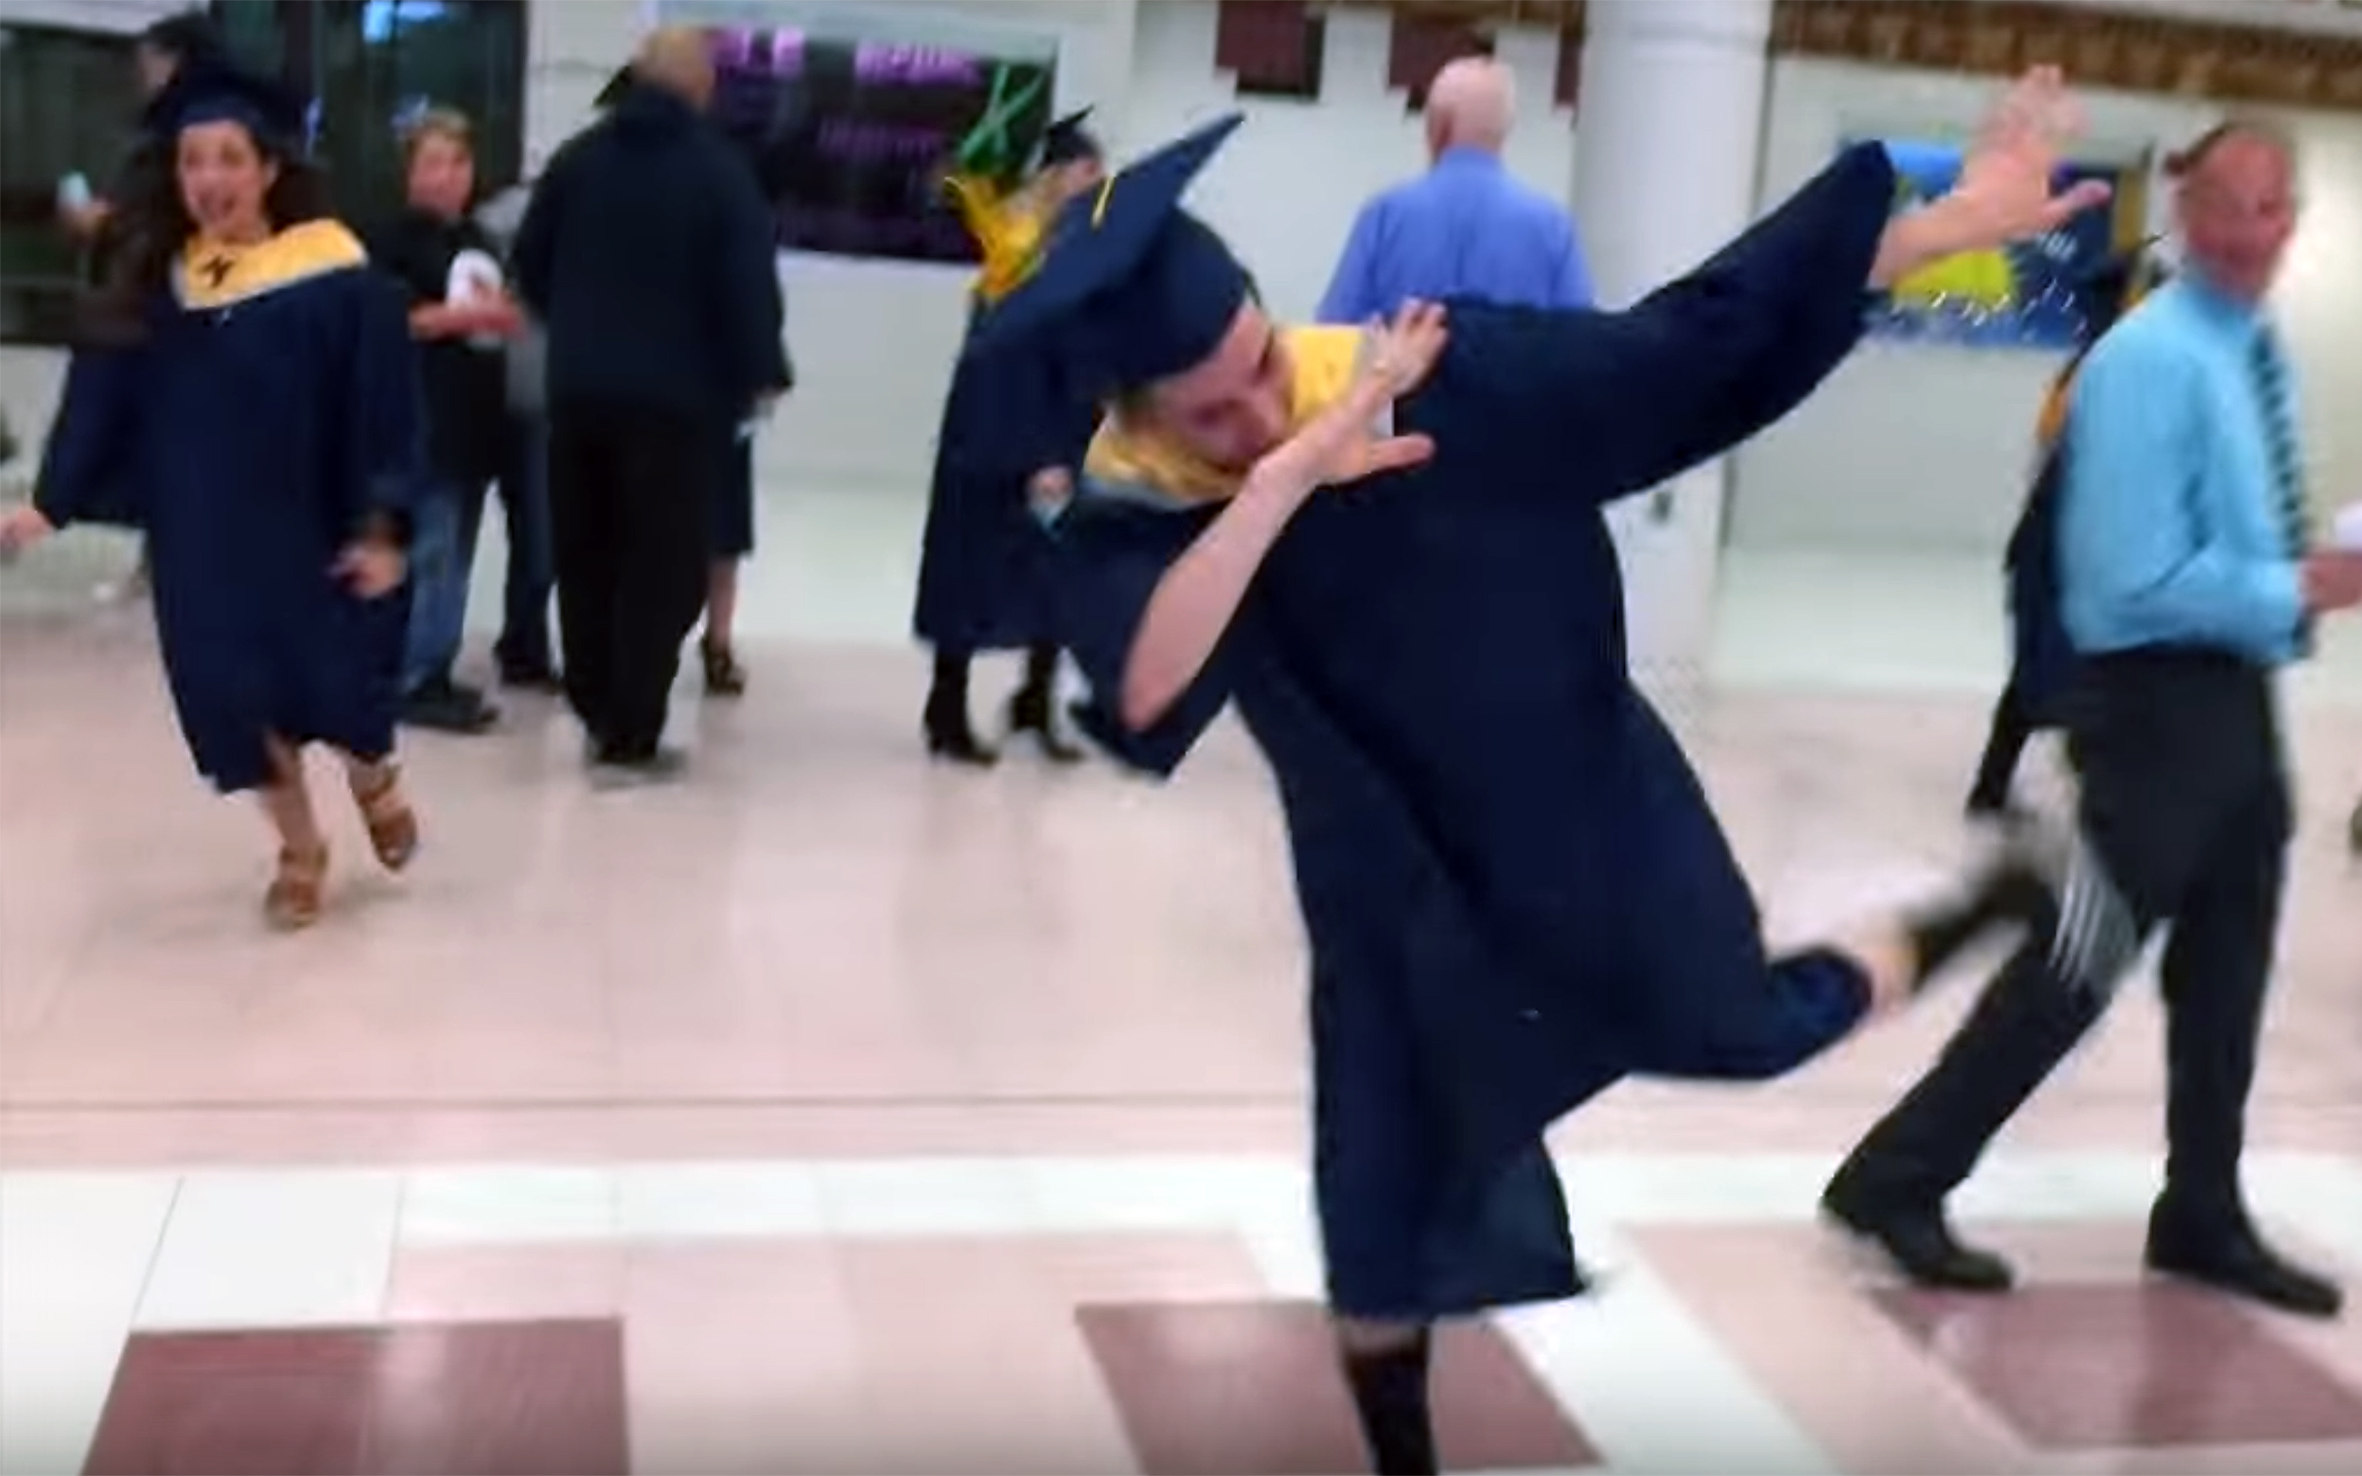 340.Graduate dance / Global - Graduate dance are various dances performed by graduate students upon completion of their studies at their graduation ceremonies or celebrations.